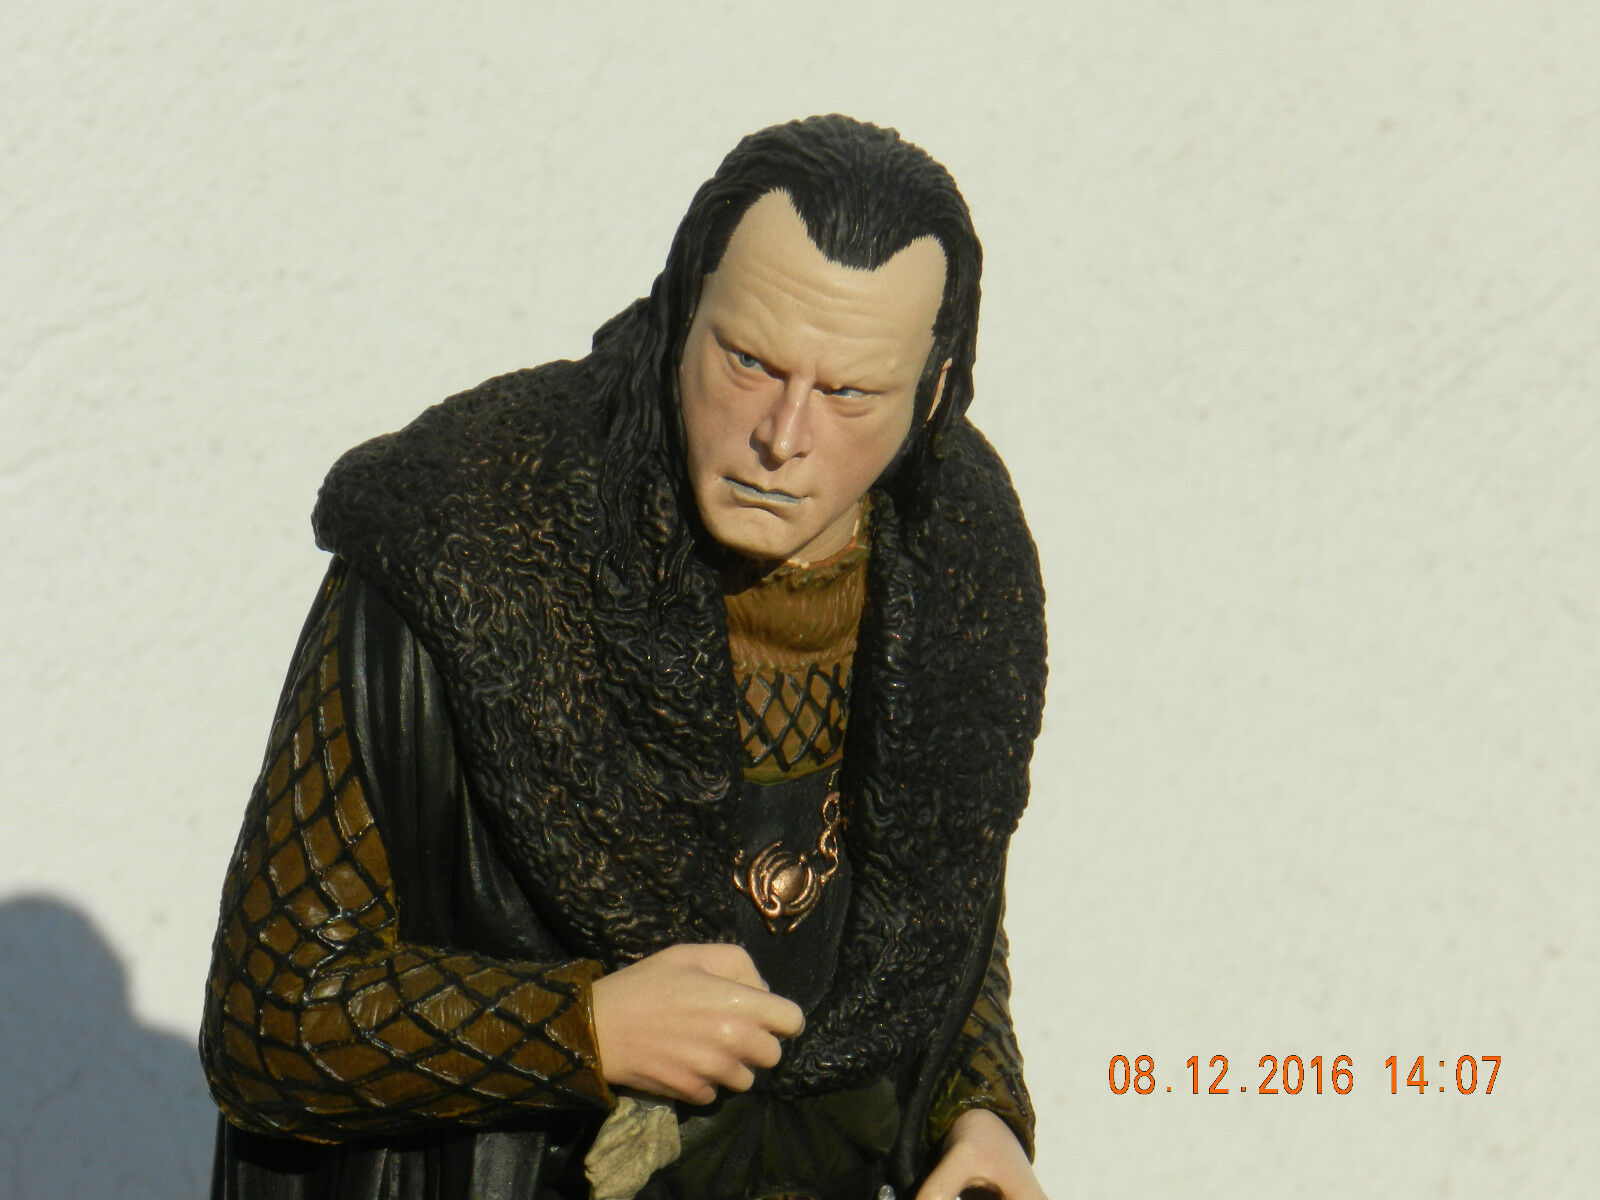 Grima Wormtongue Sideshow Weta Statue Scale 1 6 The Lord of the Rings